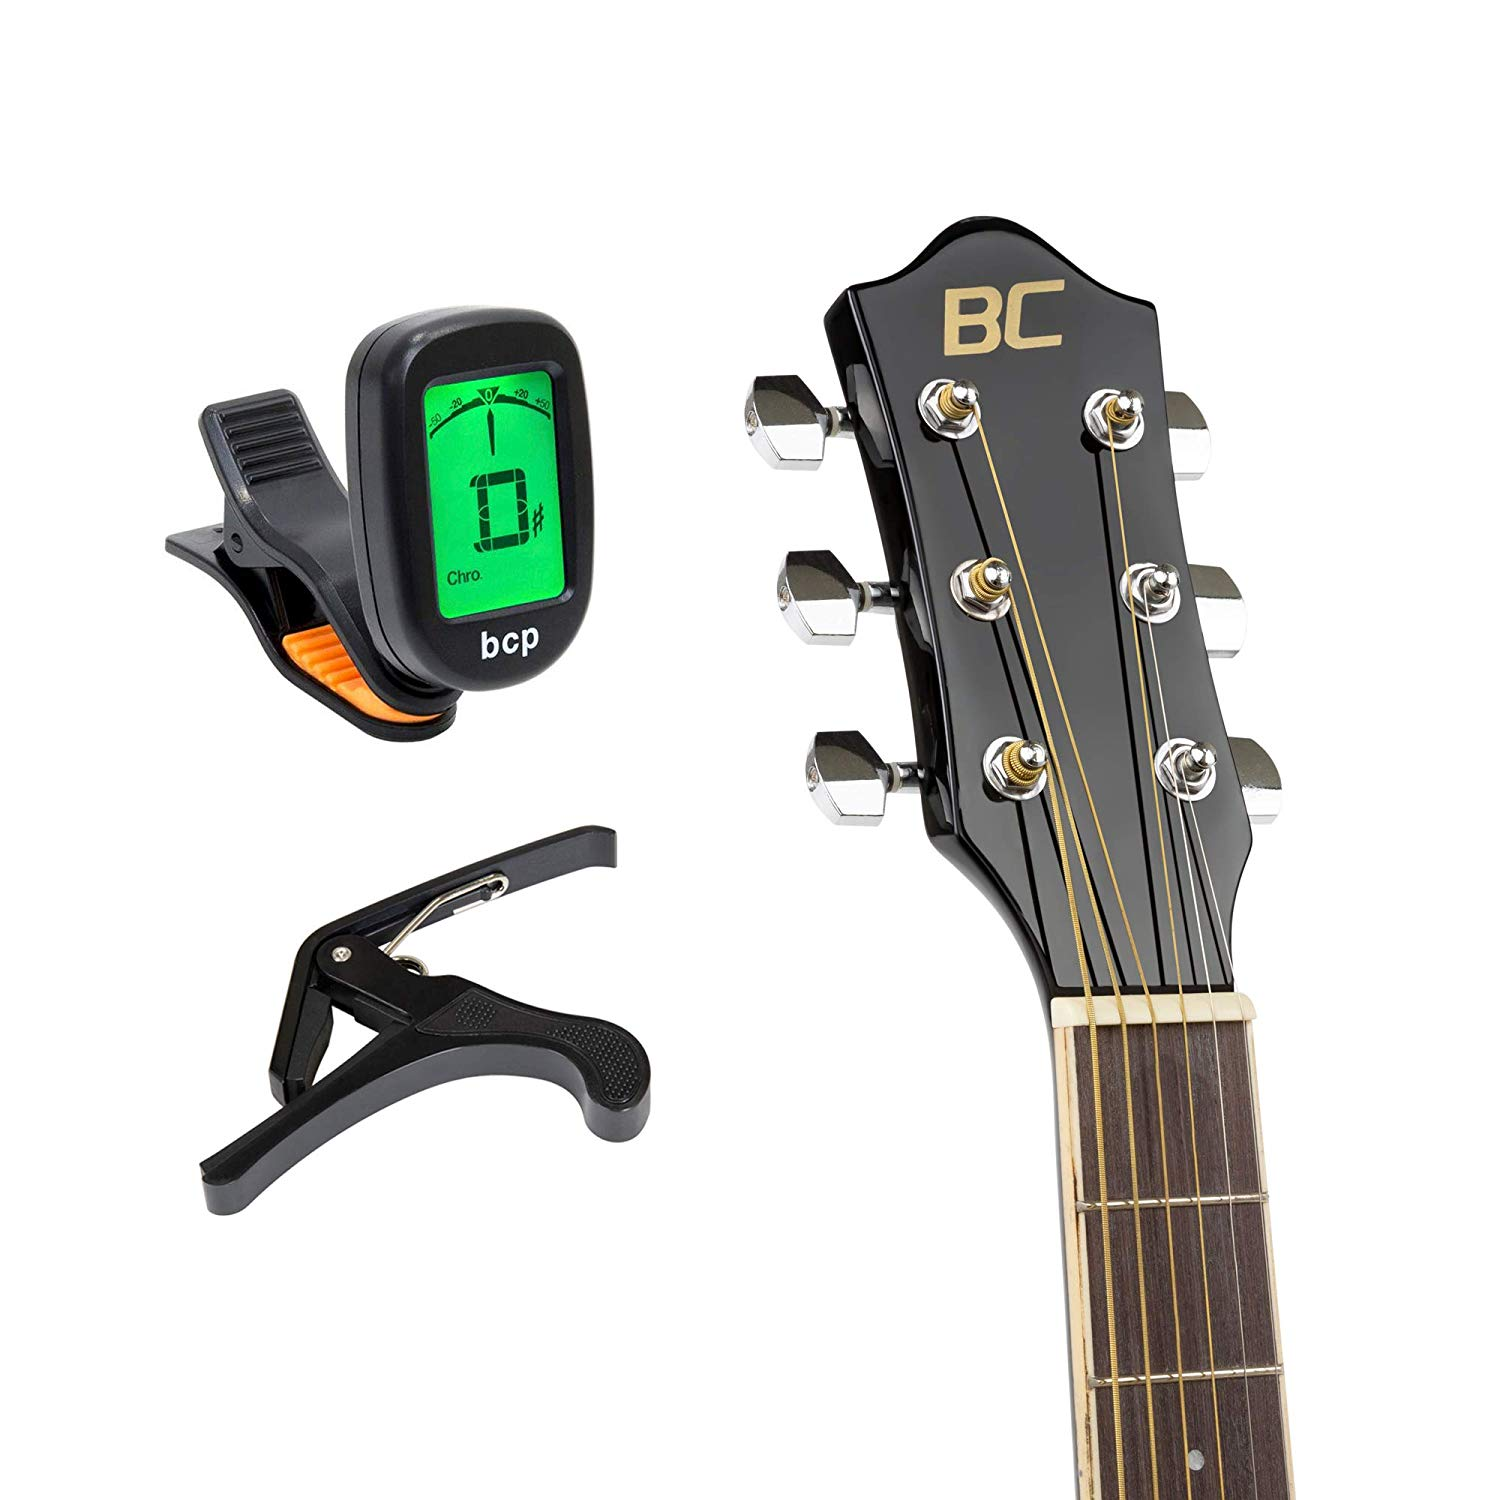 The Tuner & Capo that come with the BC Acoustic-Electric Guitar